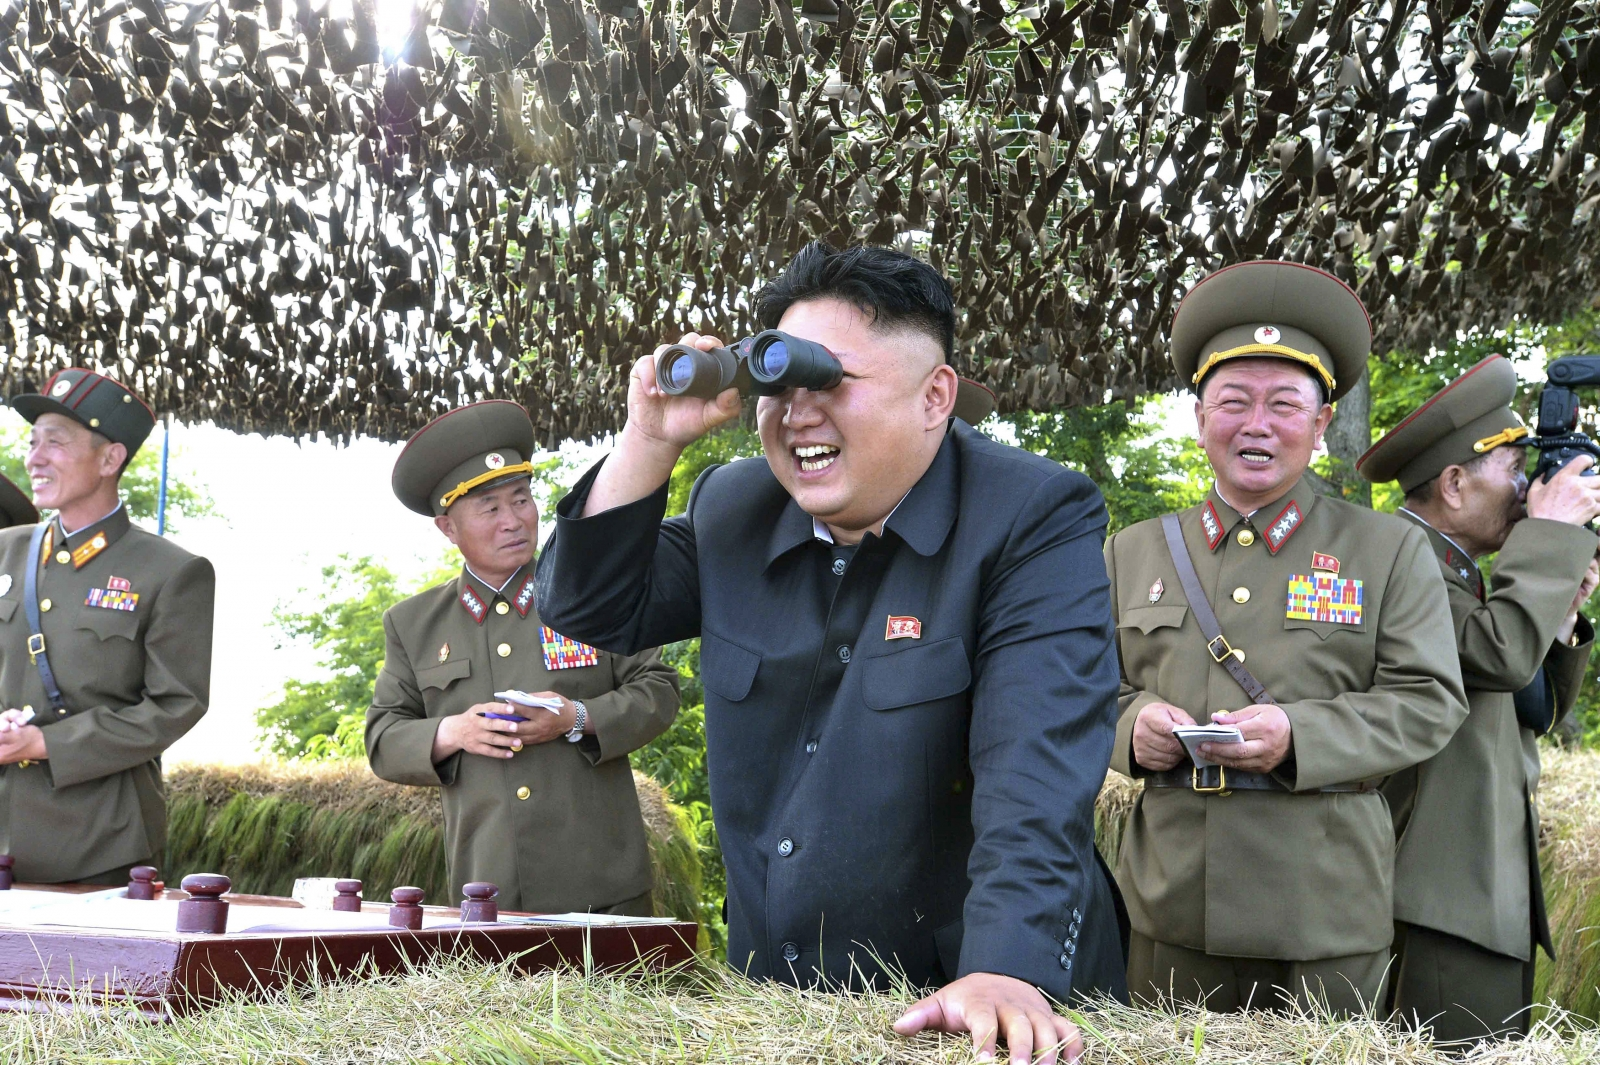 Kim Jong Un looks through binoculars